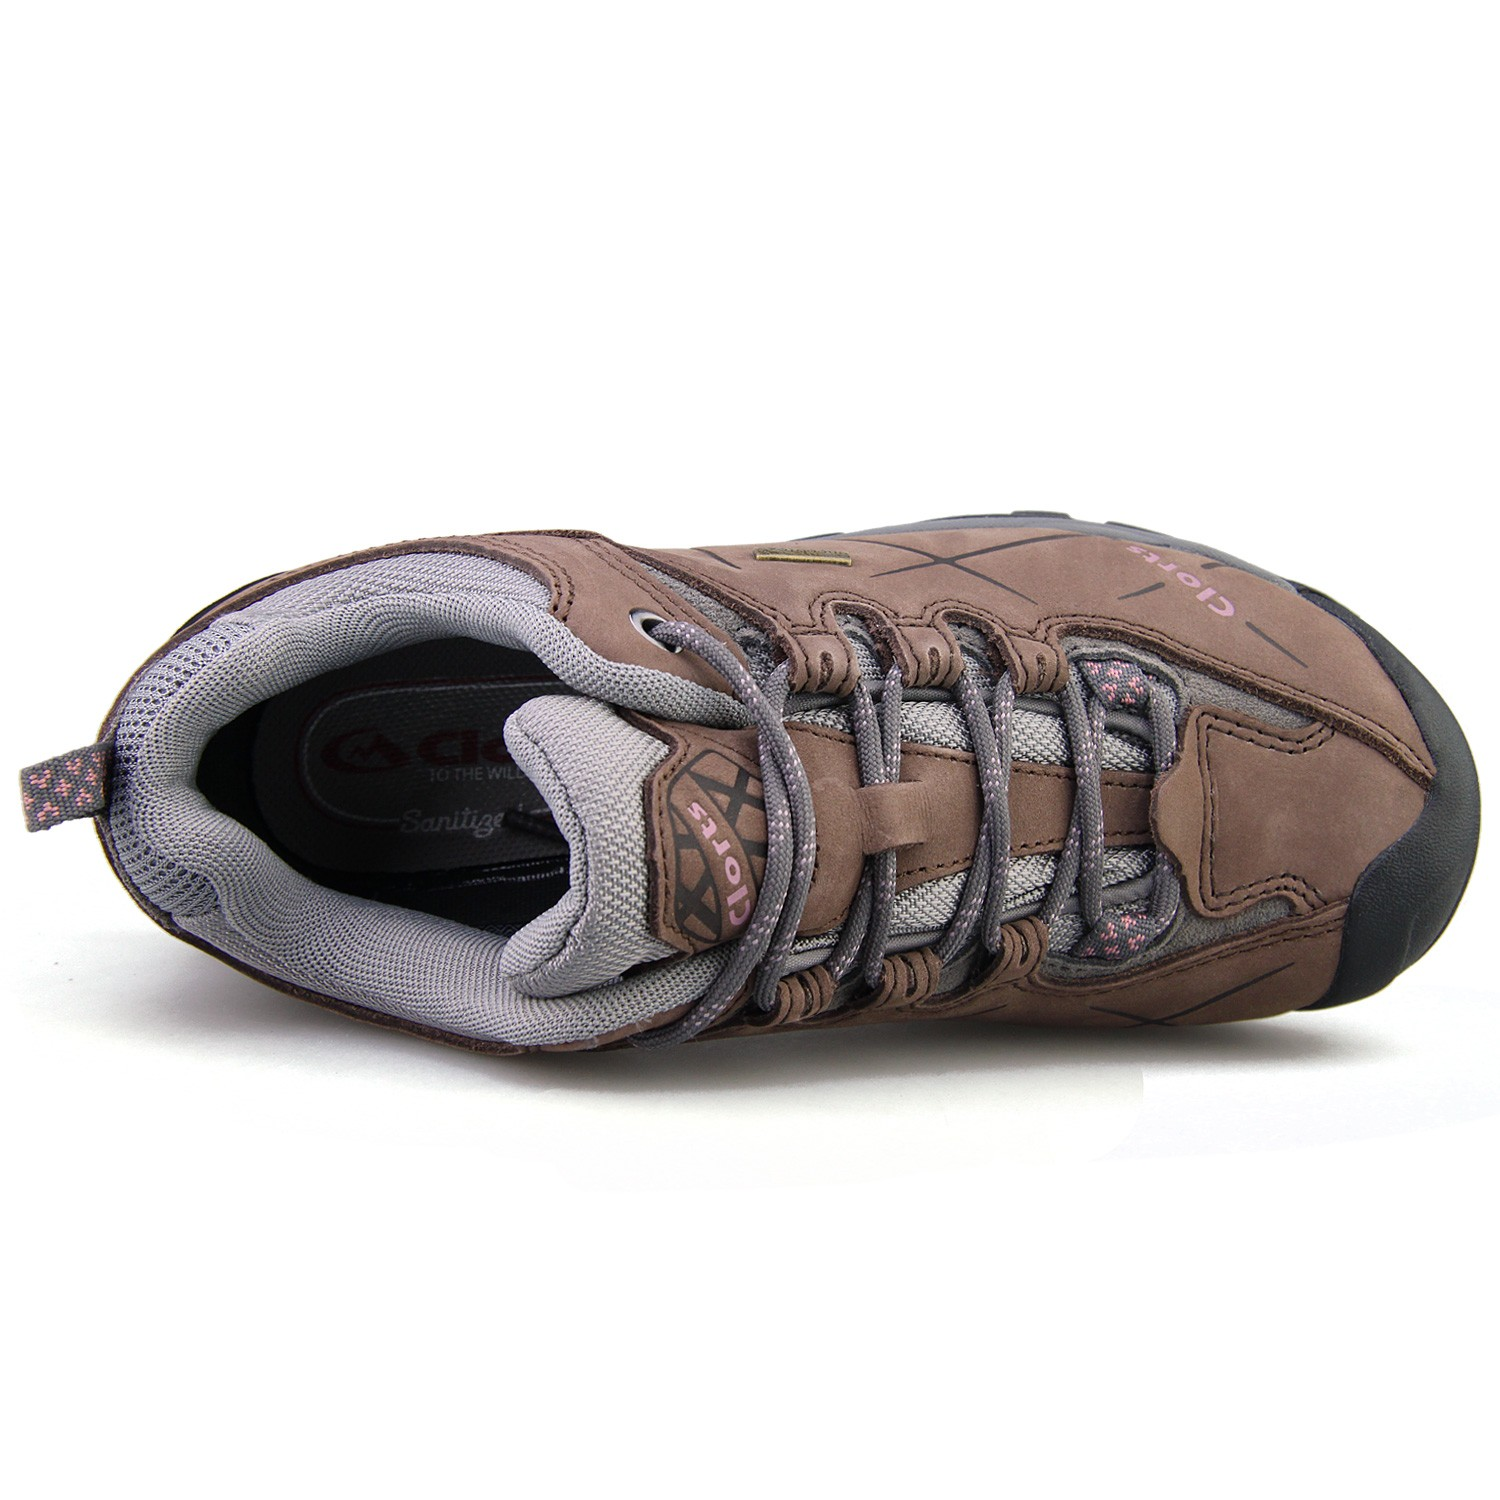 leather hiking shoes leather mens hiking boots Manufacturers, leather hiking shoes leather mens hiking boots Factory, Supply leather hiking shoes leather mens hiking boots